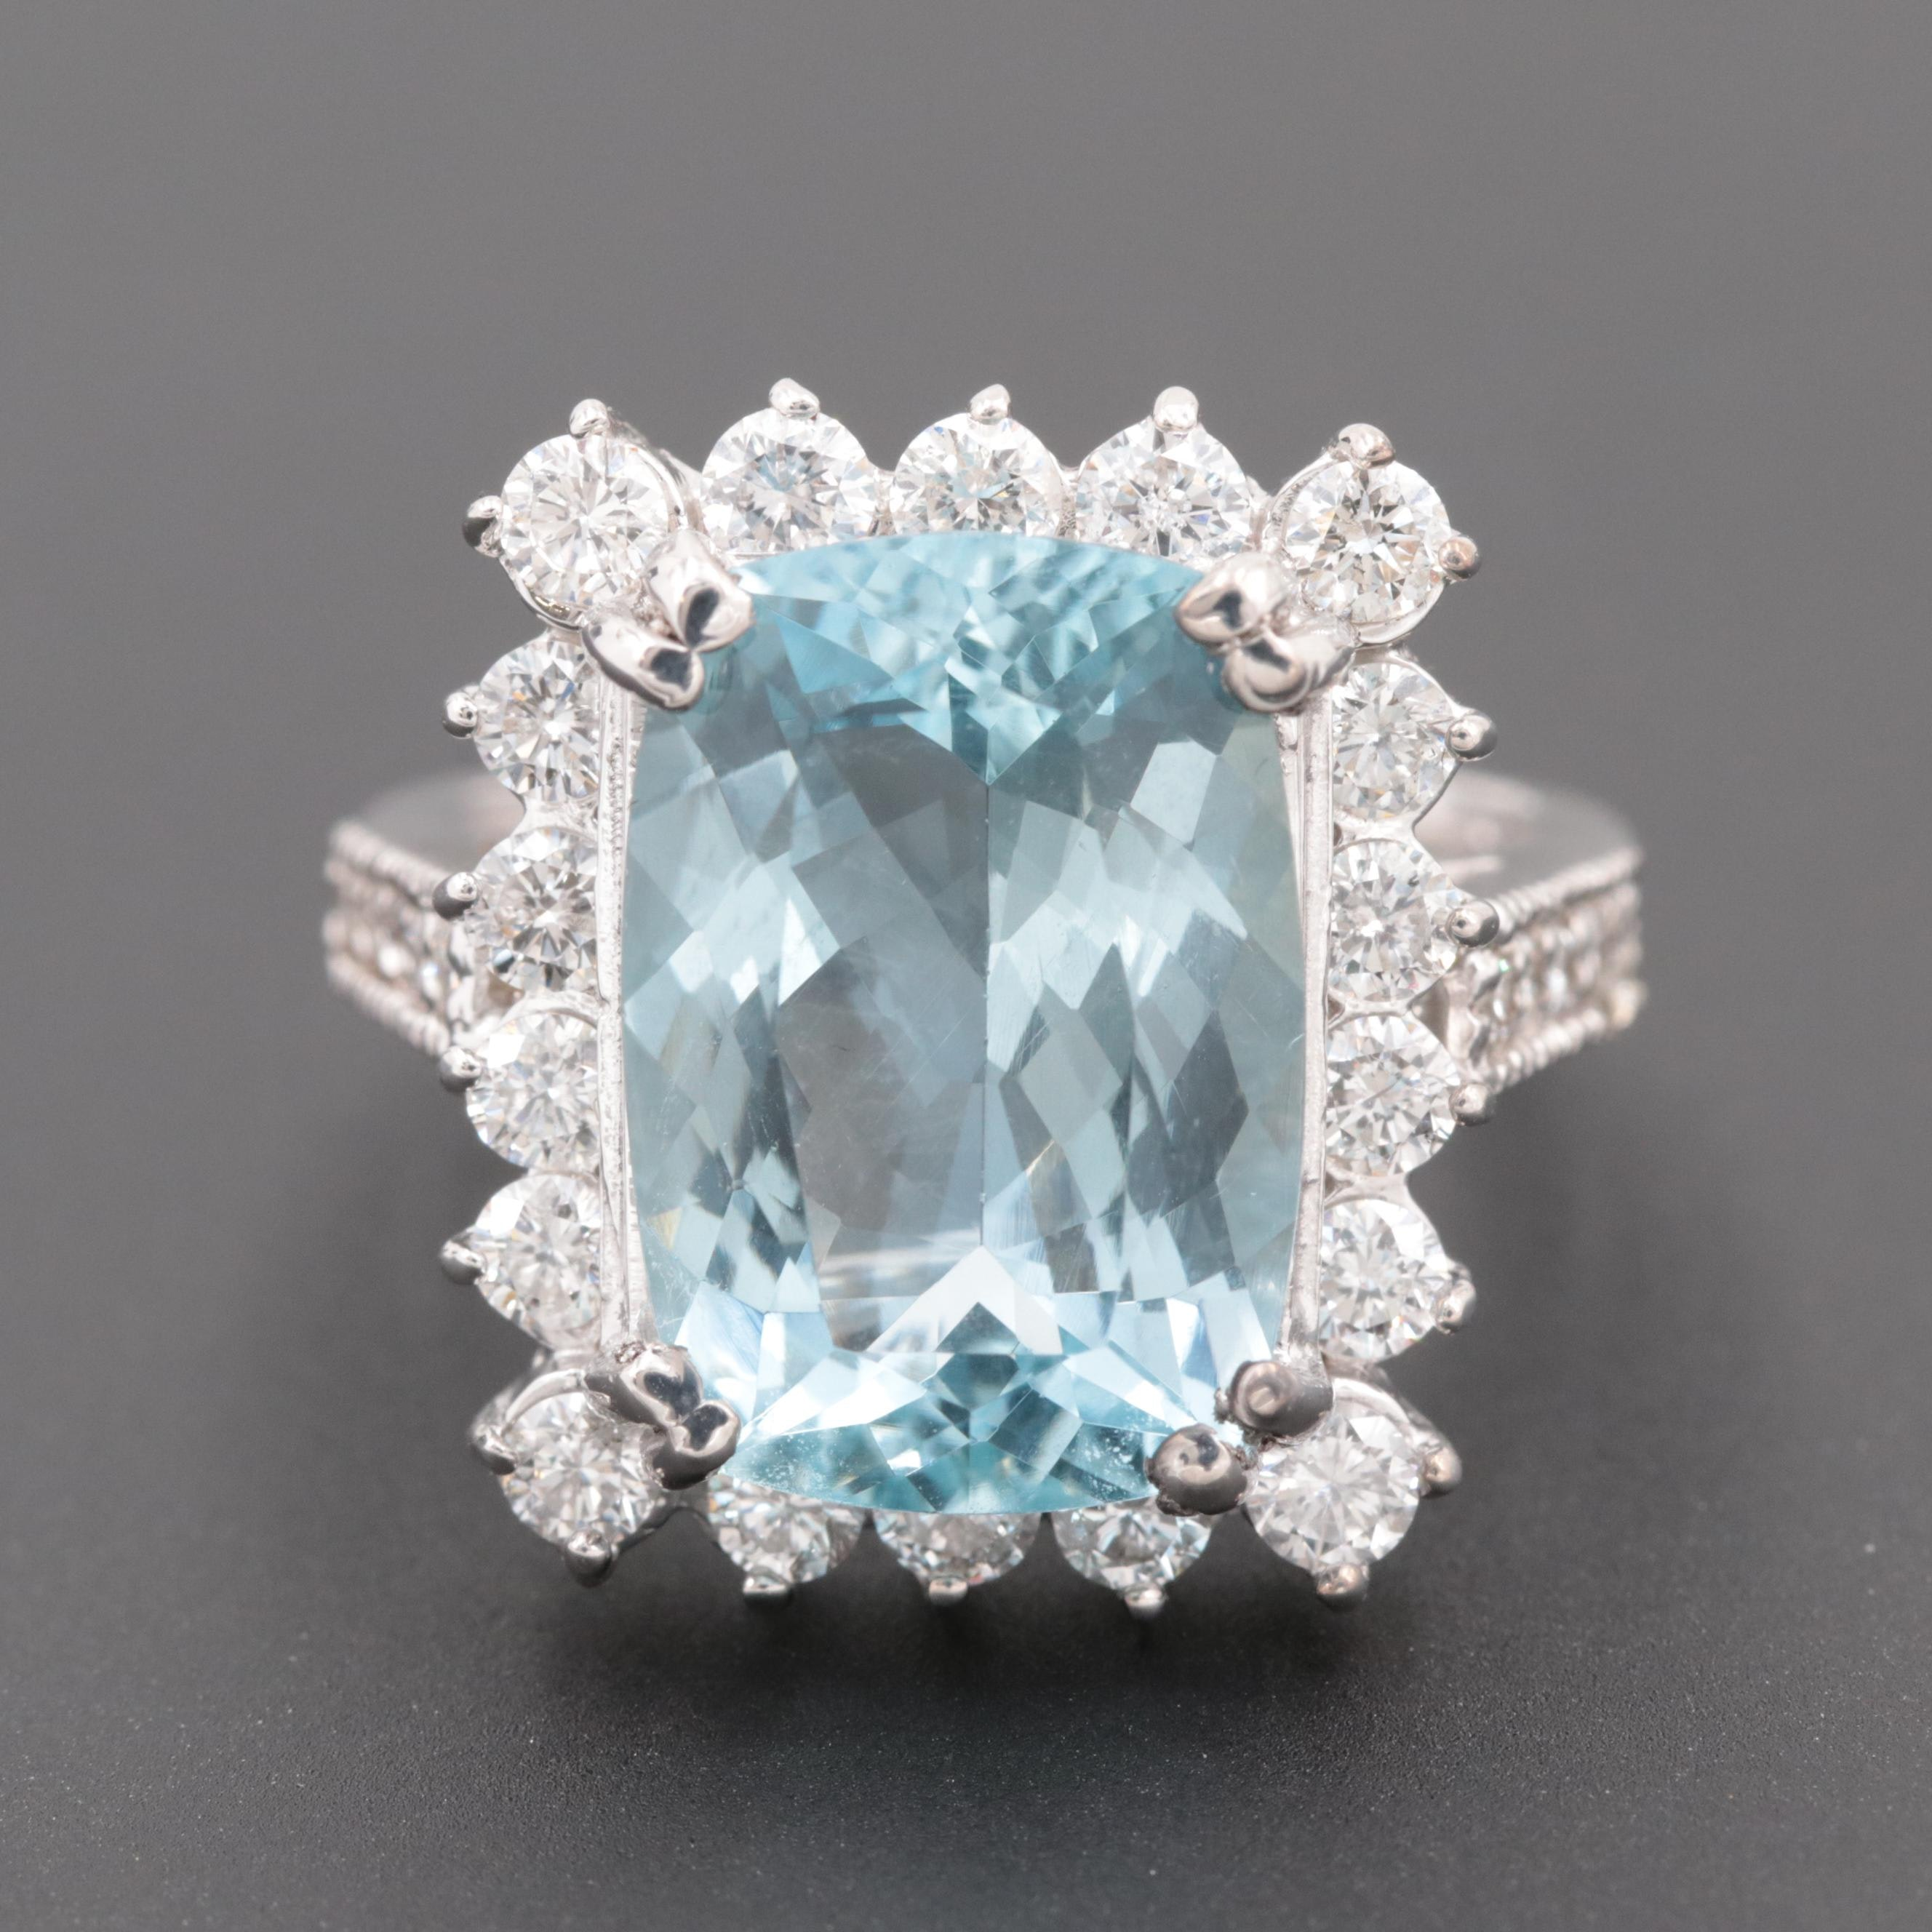 18K White Gold 6.65 CT Aquamarine and 1.28 CTW Diamond Ring